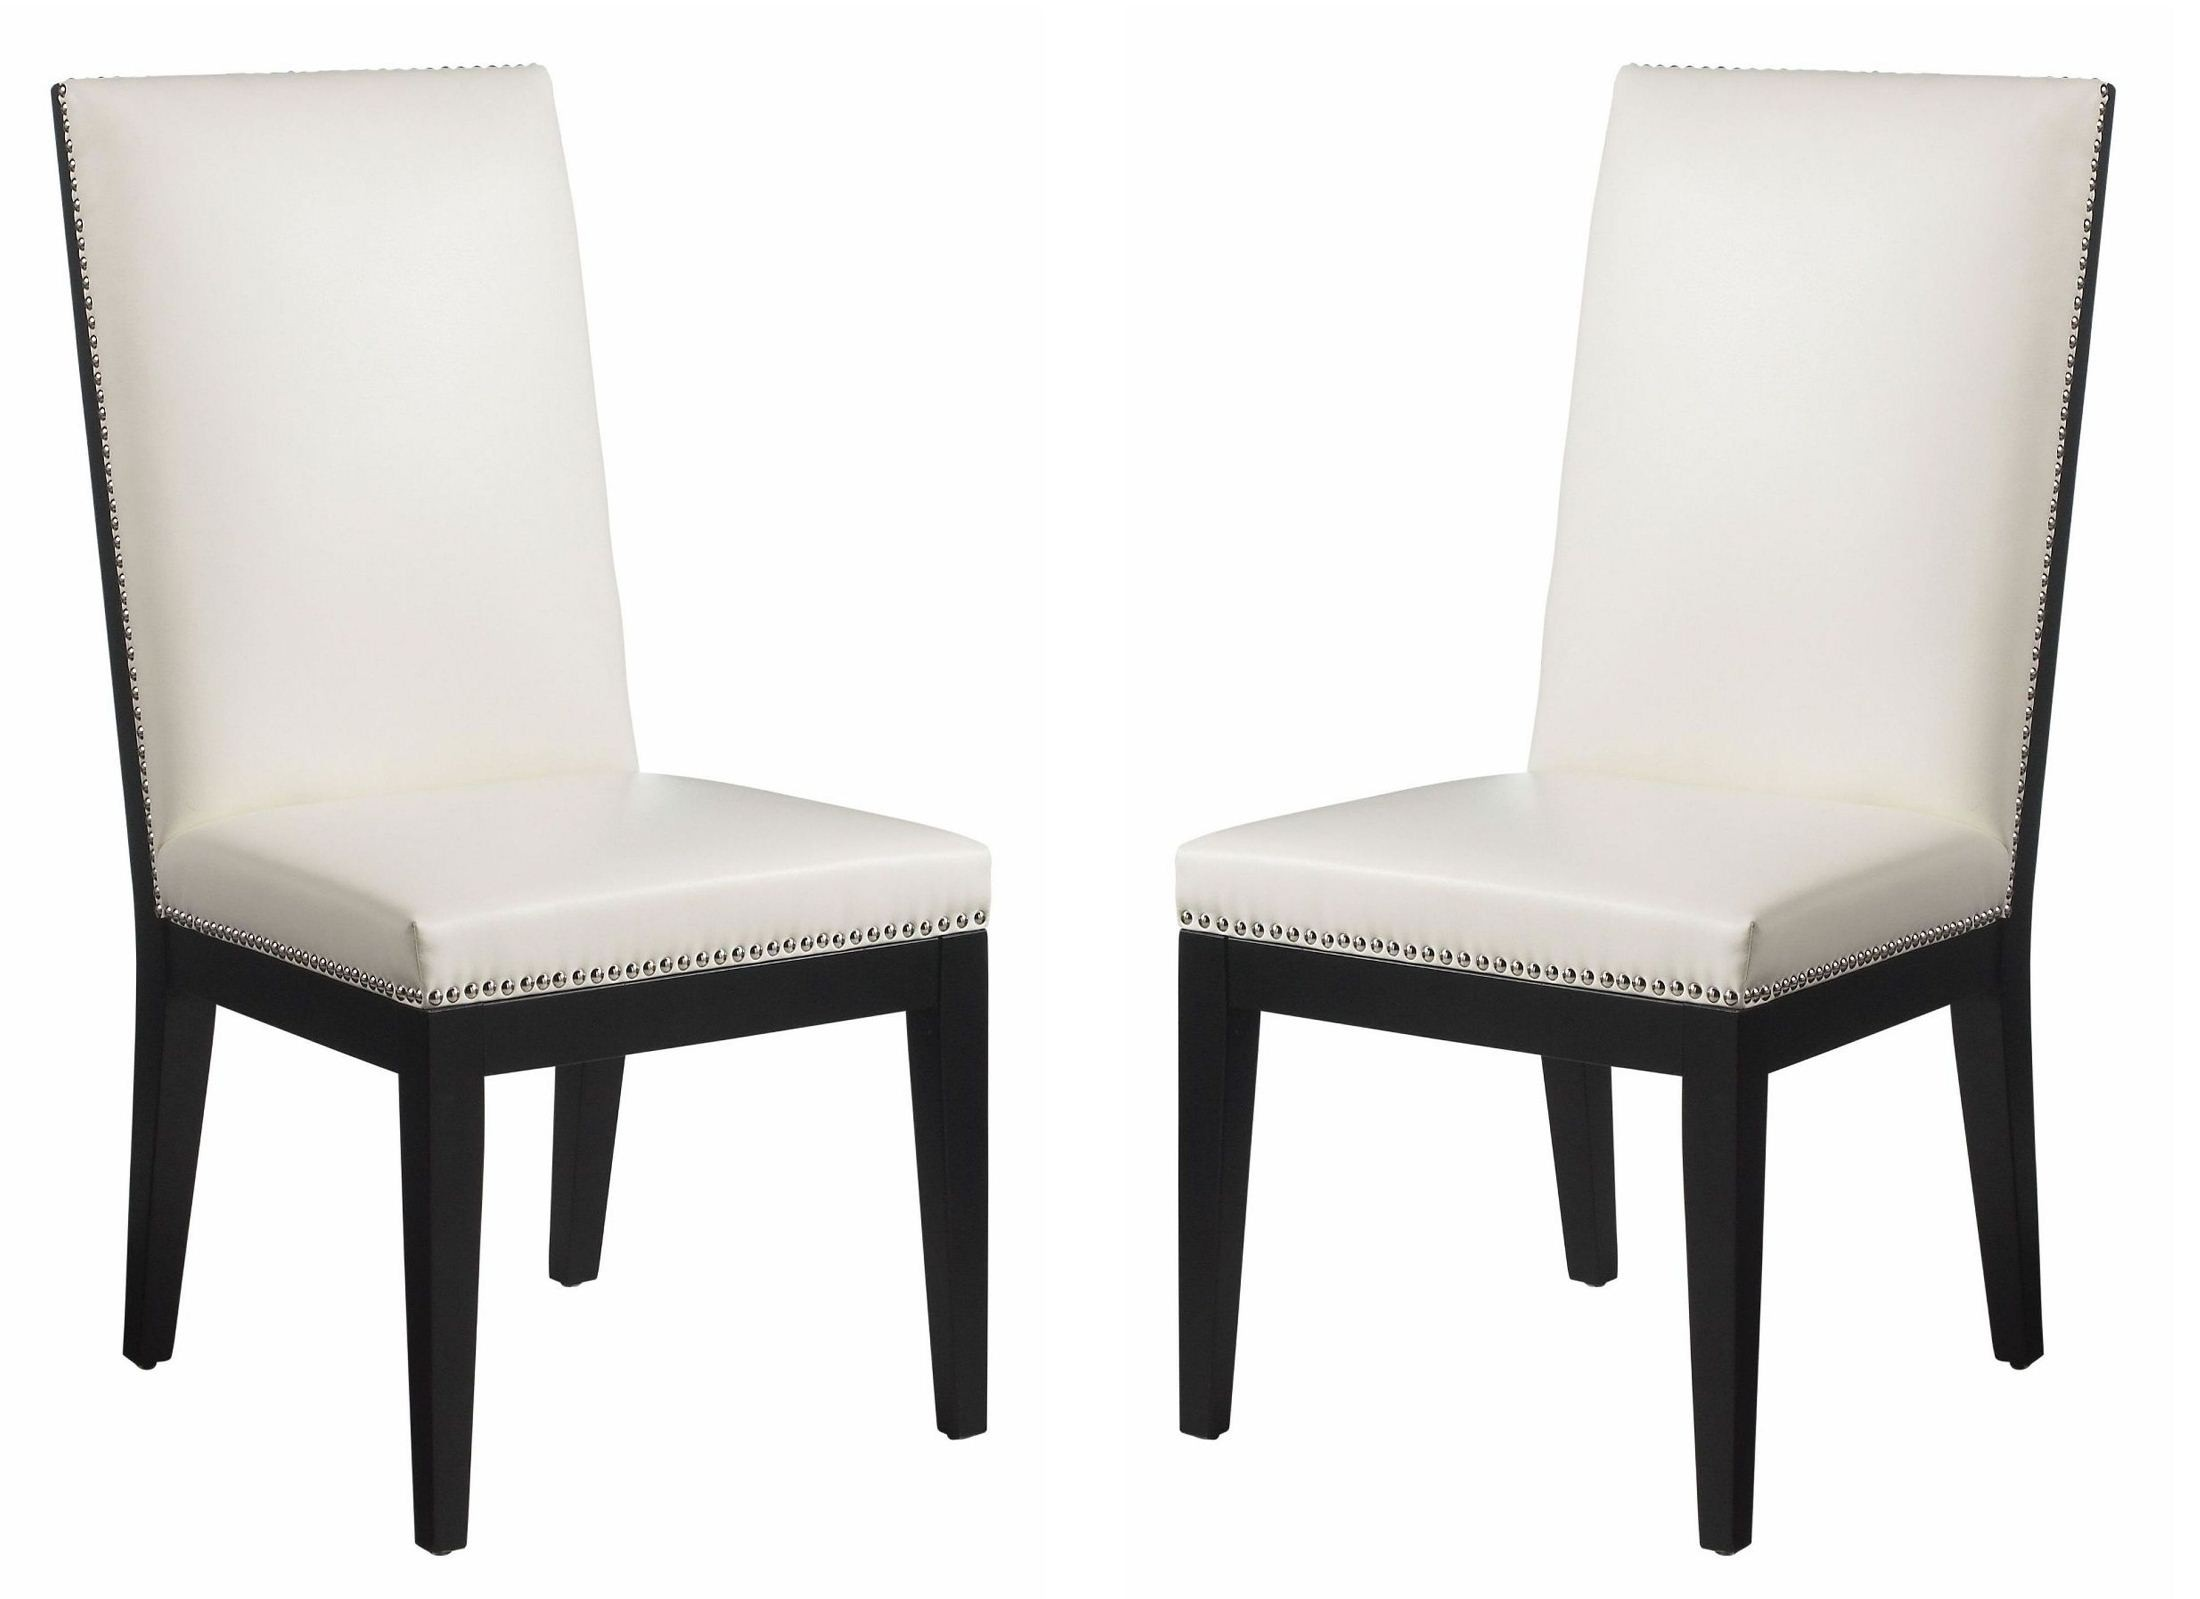 Ivory Dining Chairs St Tropez Ivory Dining Chair Set Of 2 From Sunpan 42996